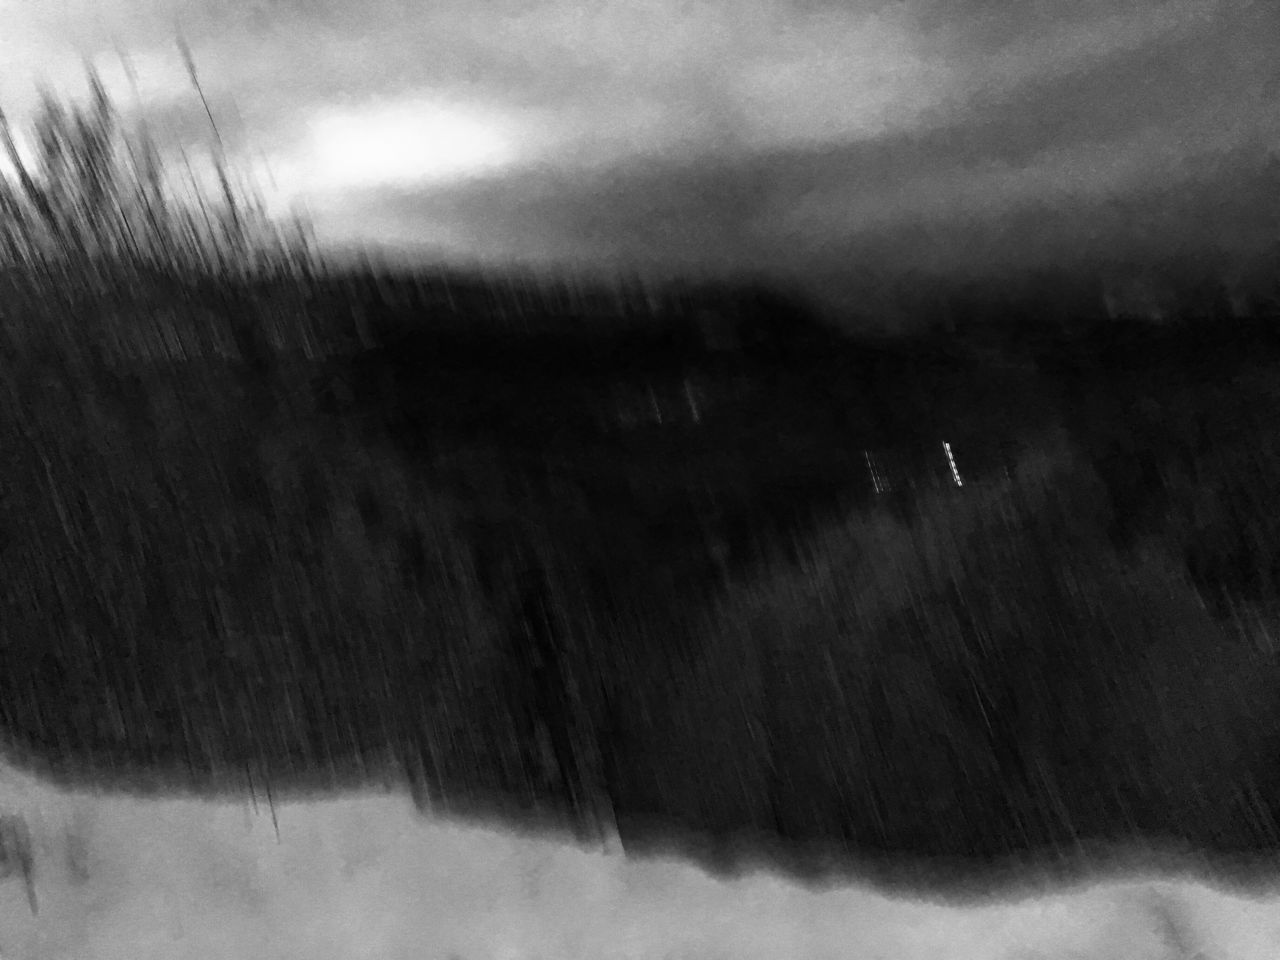 Outdoors Nature Mountain Blur Effect Scenics No People Sky Night Blackandwhite France Rhonealpes Isere  Grenoble Skiing Les 7 Laux